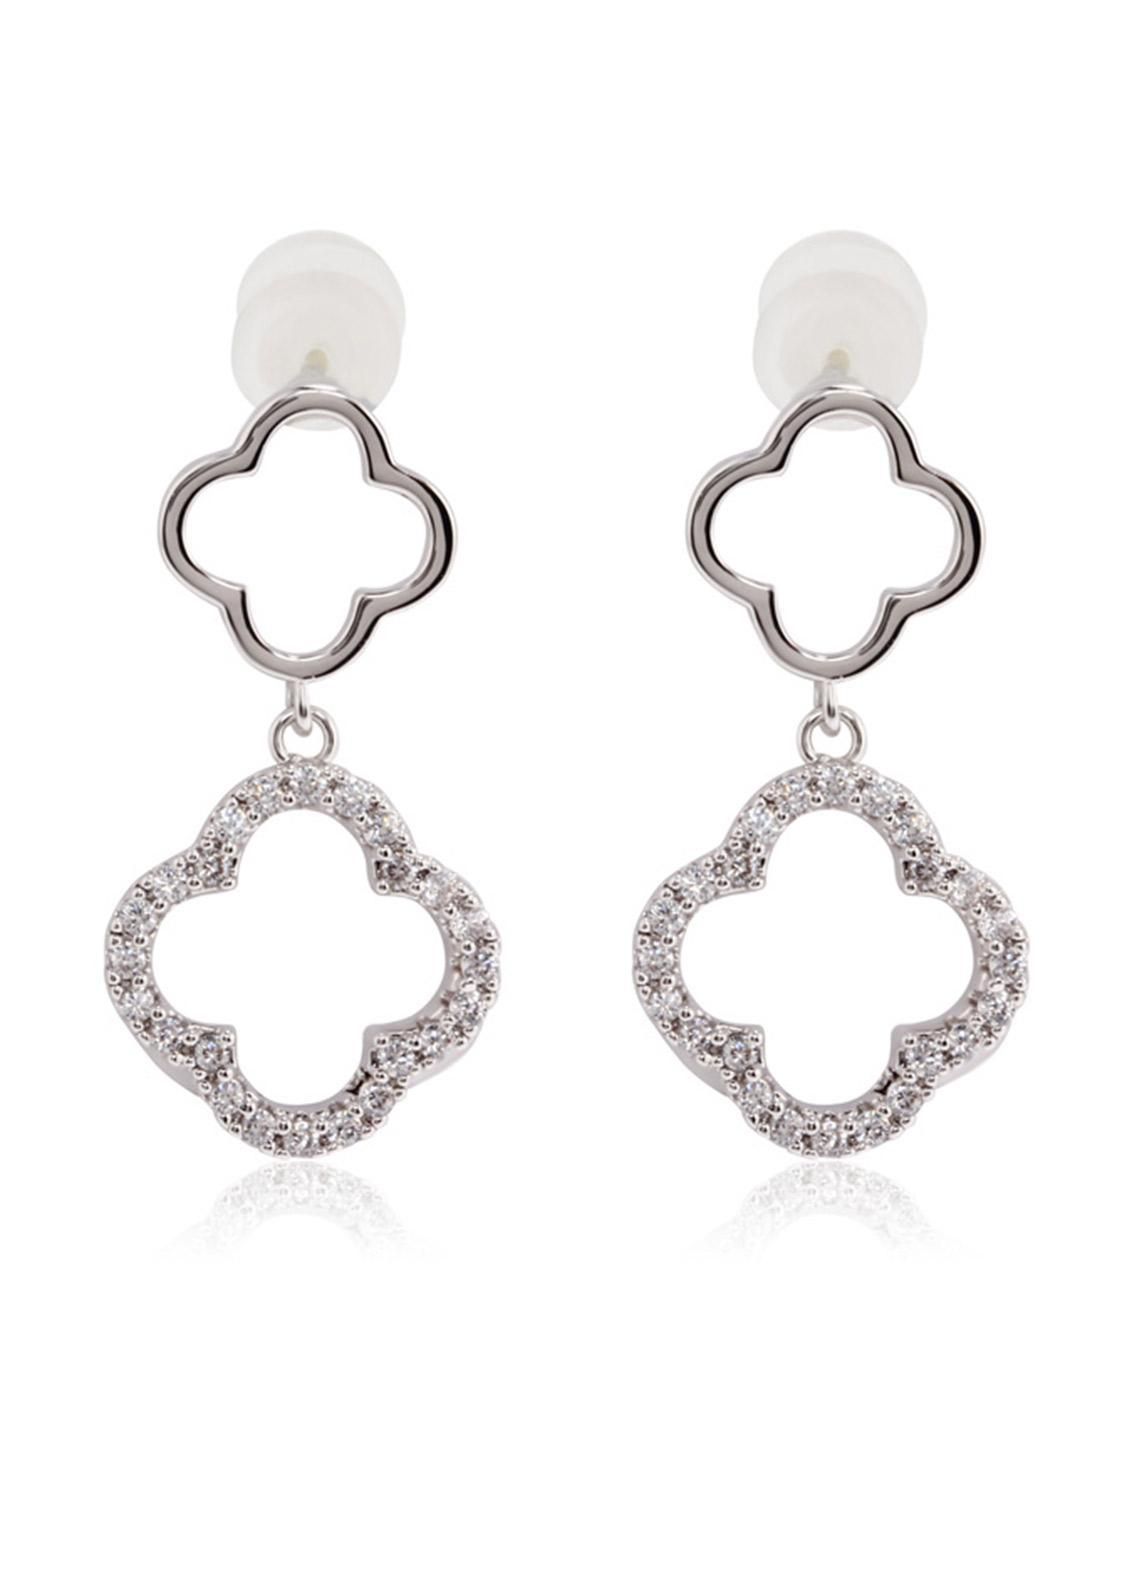 Anna Grace London by Silk Avenue Silver Crystal Sparkling Fashion Earring AGE0028 - Ladies Jewellery